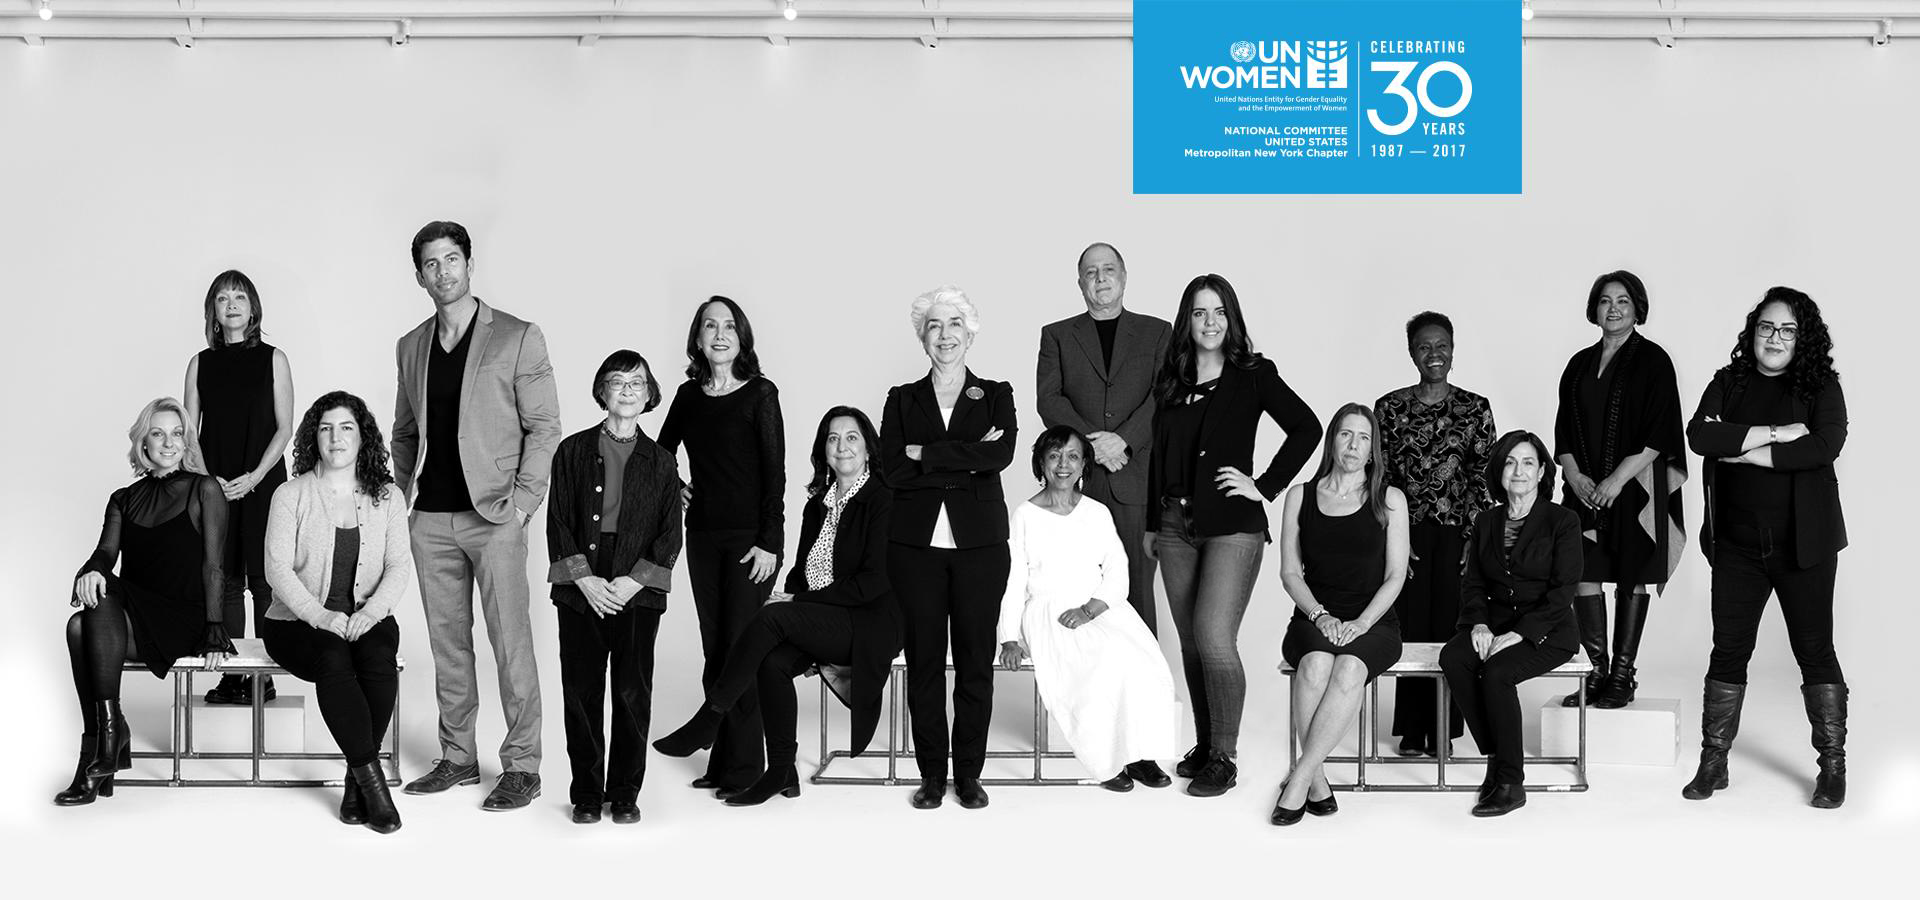 united nations un women champions of change 2018 equality global